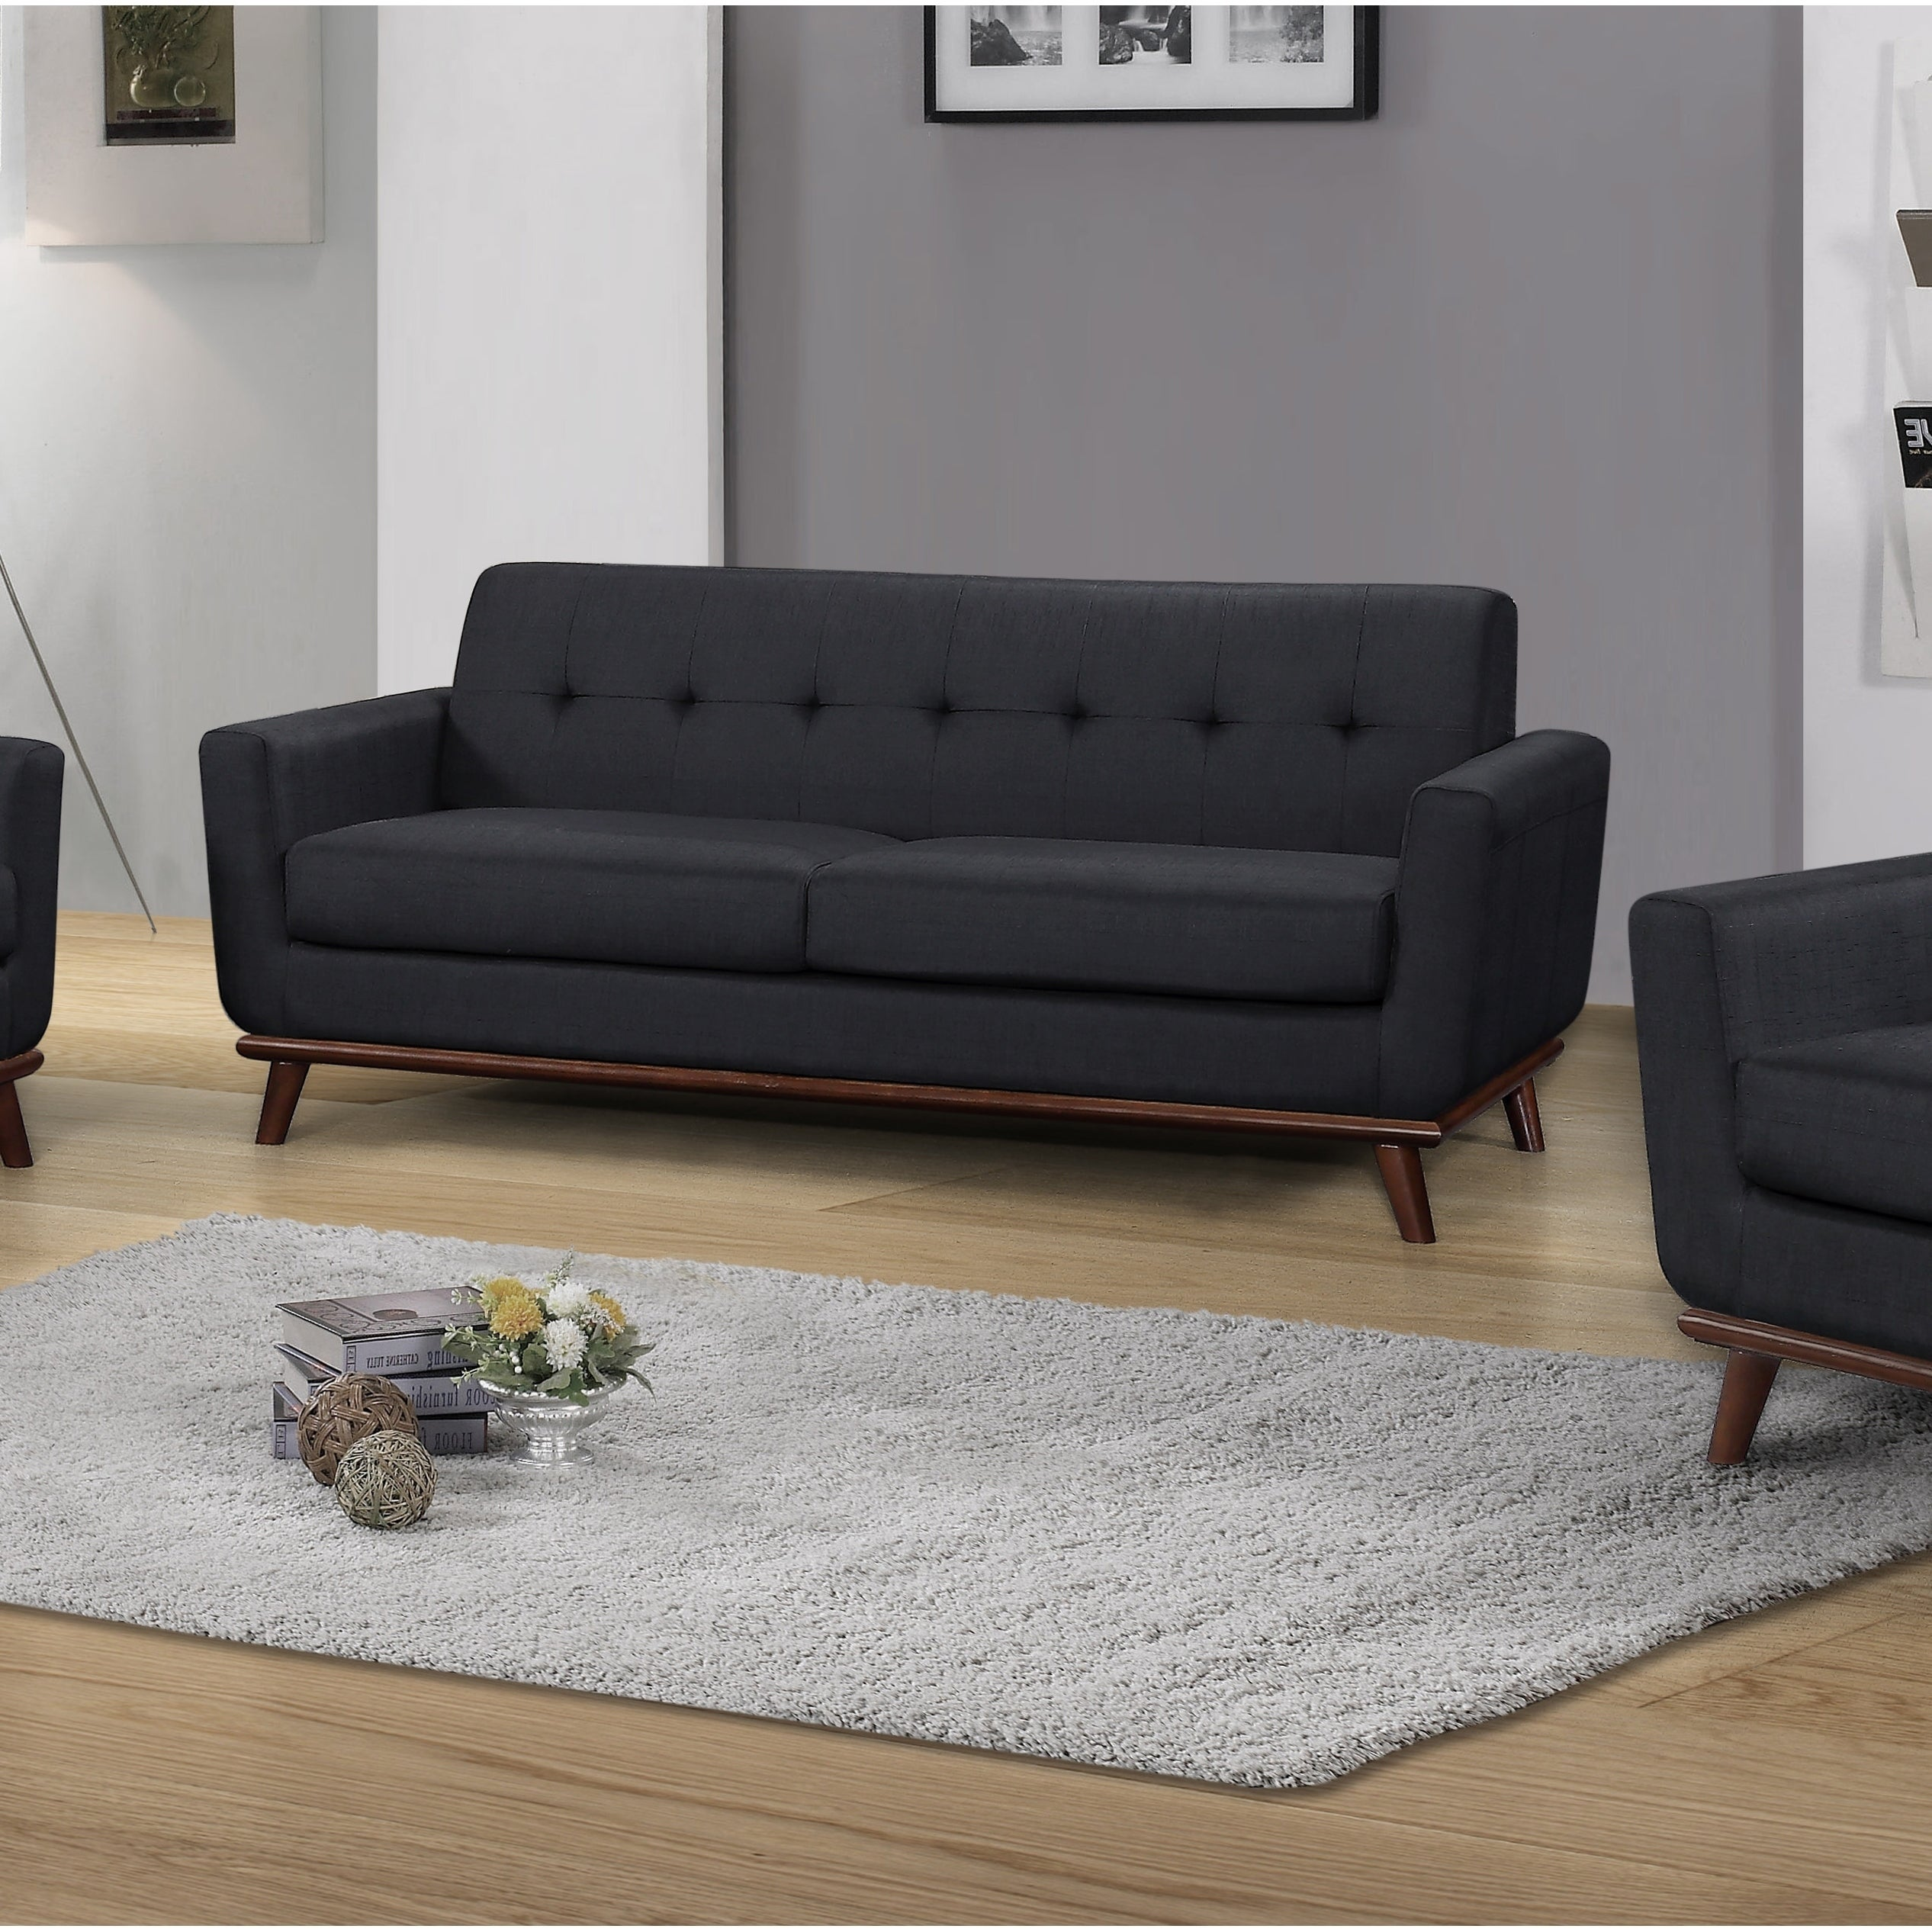 Shop Best Master Furniture C106 Upholstered Sofa U0026 Love Seat   Free  Shipping Today   Overstock.com   20192520